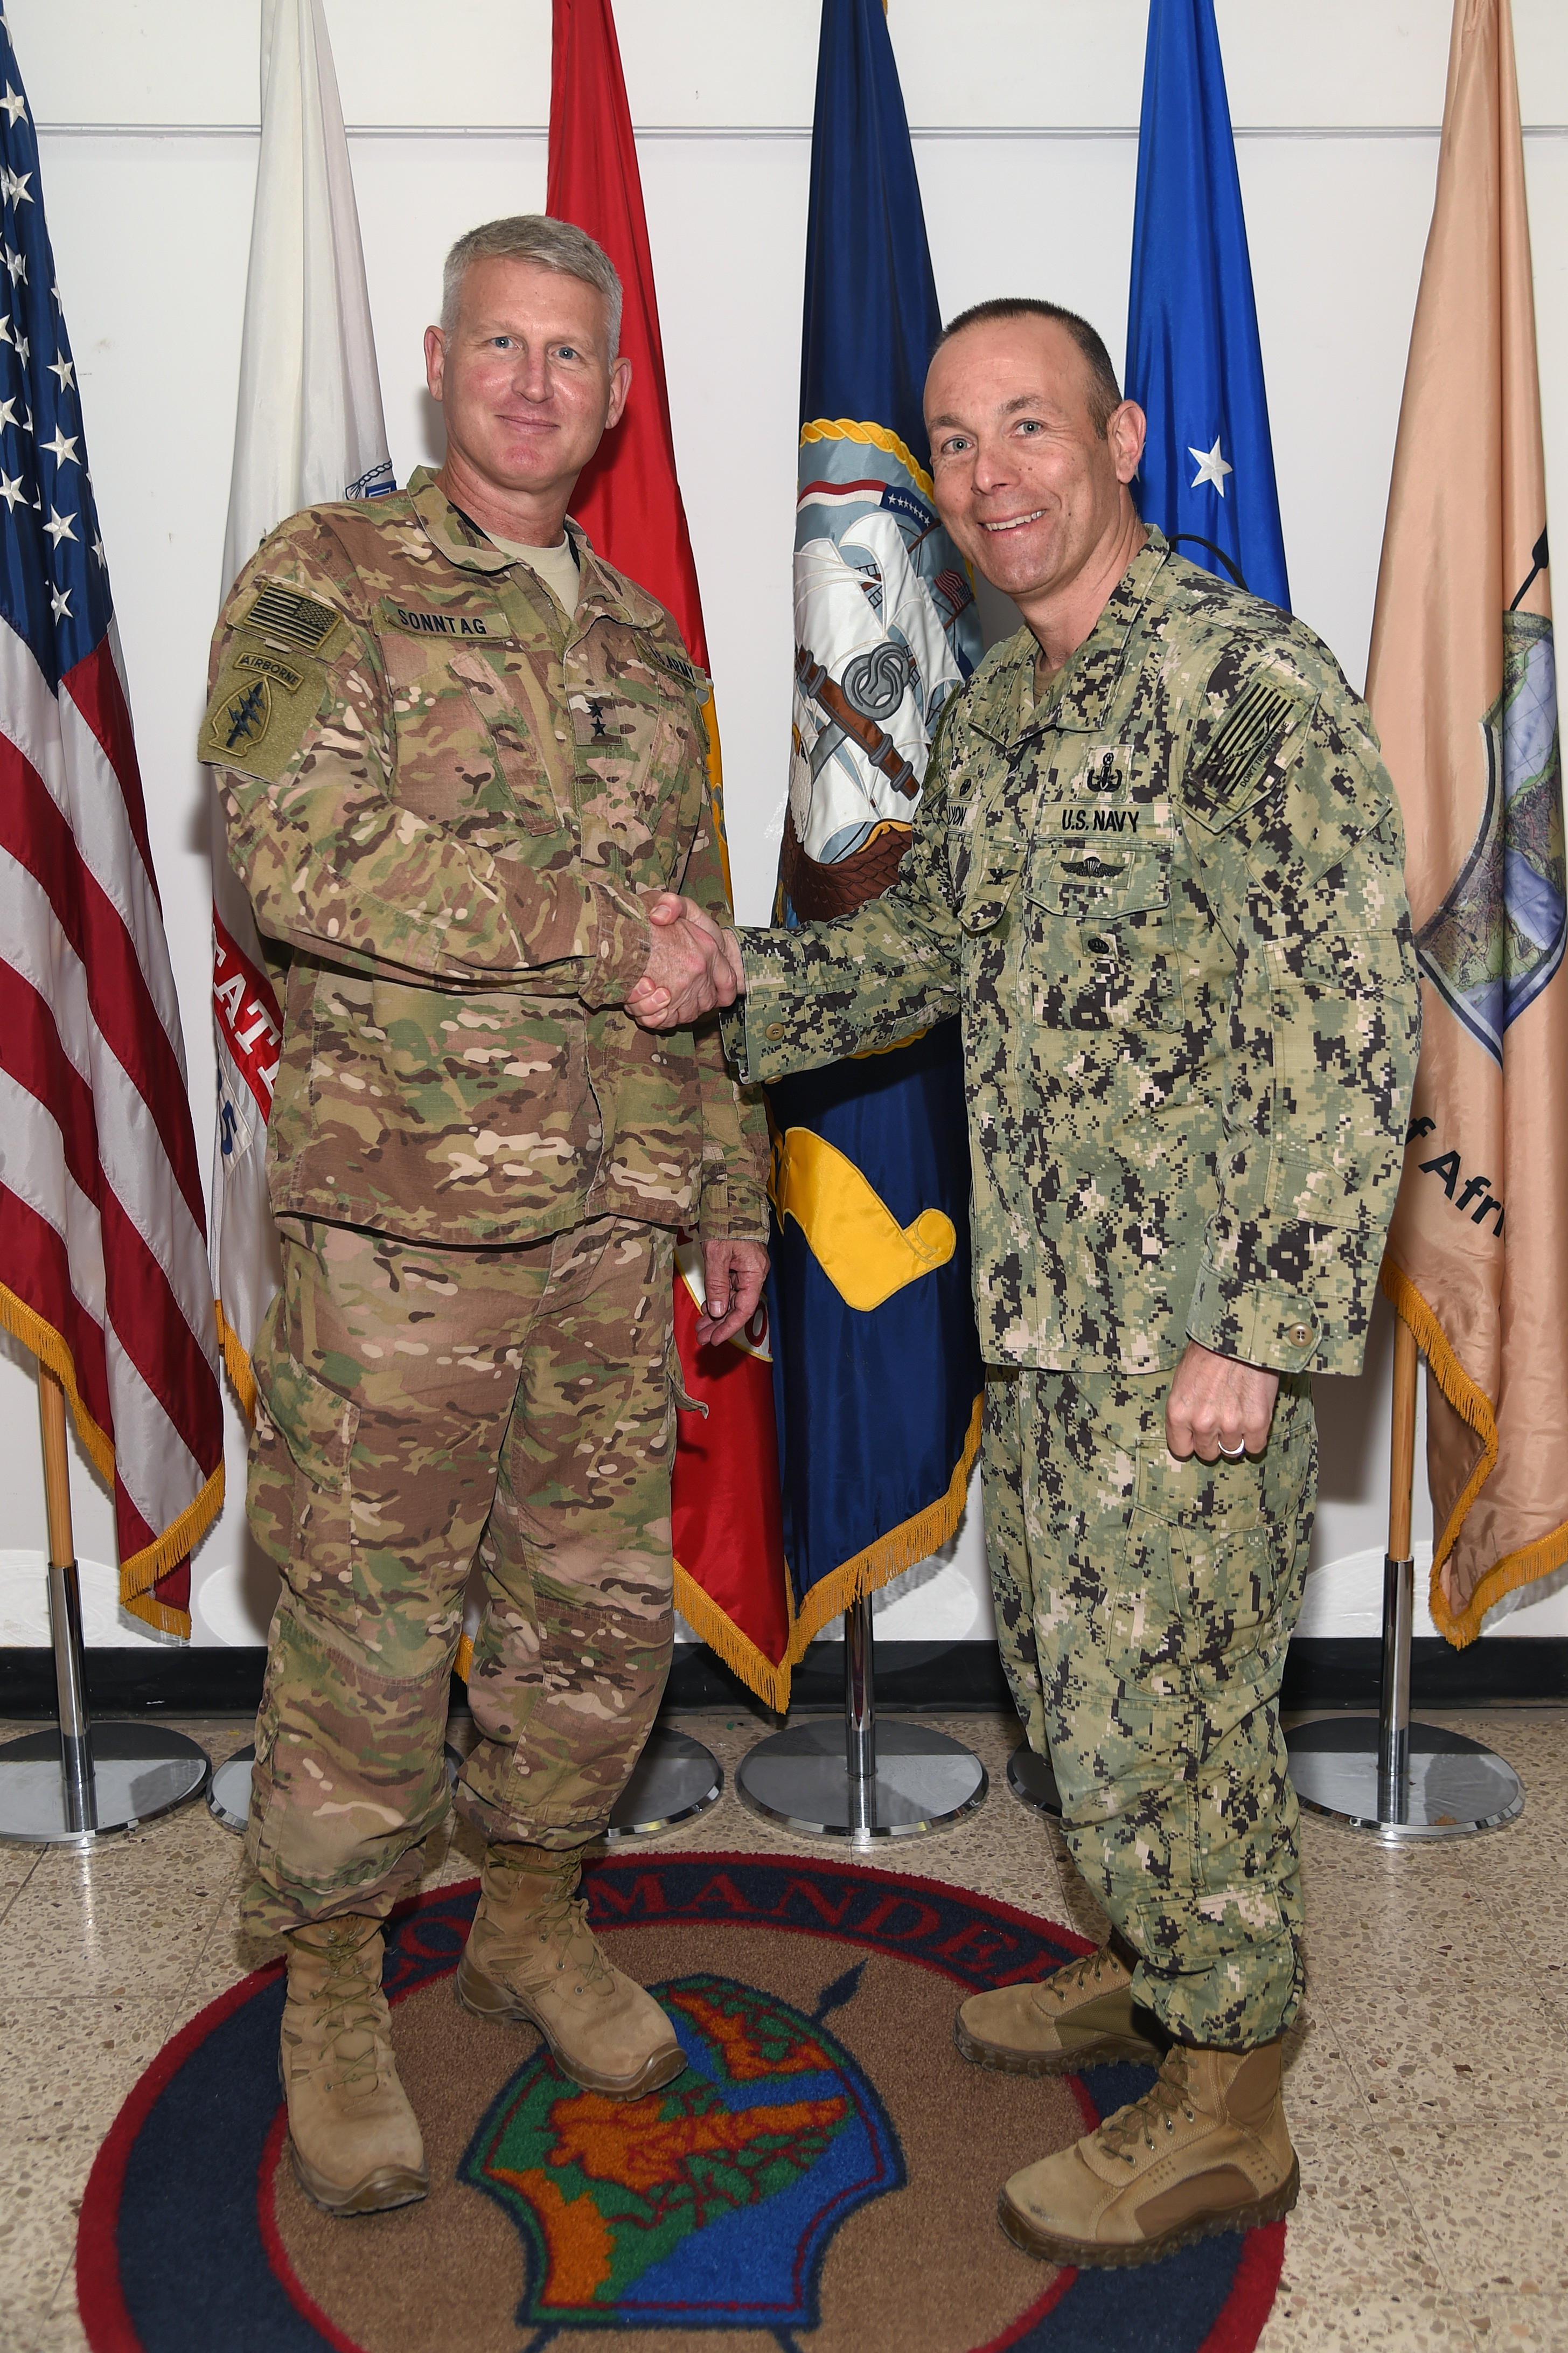 U.S. Navy Capt. Leonard Lyon, commander of Naval Expeditionary Task Force Europe and Africa (CTF 68) meets with U.S. Army Maj. Gen. Kurt Sonntag, commanding general of Combined Joint Task Force-Horn of Africa during a visit to Camp Lemonnier, Djibouti, March 15, 2017. CTF 68 conducts explosive ordnance disposal, naval construction, diving and salvage, hydrographic survey, expeditionary intelligence and theater security support in the U.S. 6th Fleet area of operations. (U.S. Air National Guard photo by Master Sgt. Paul Gorman)